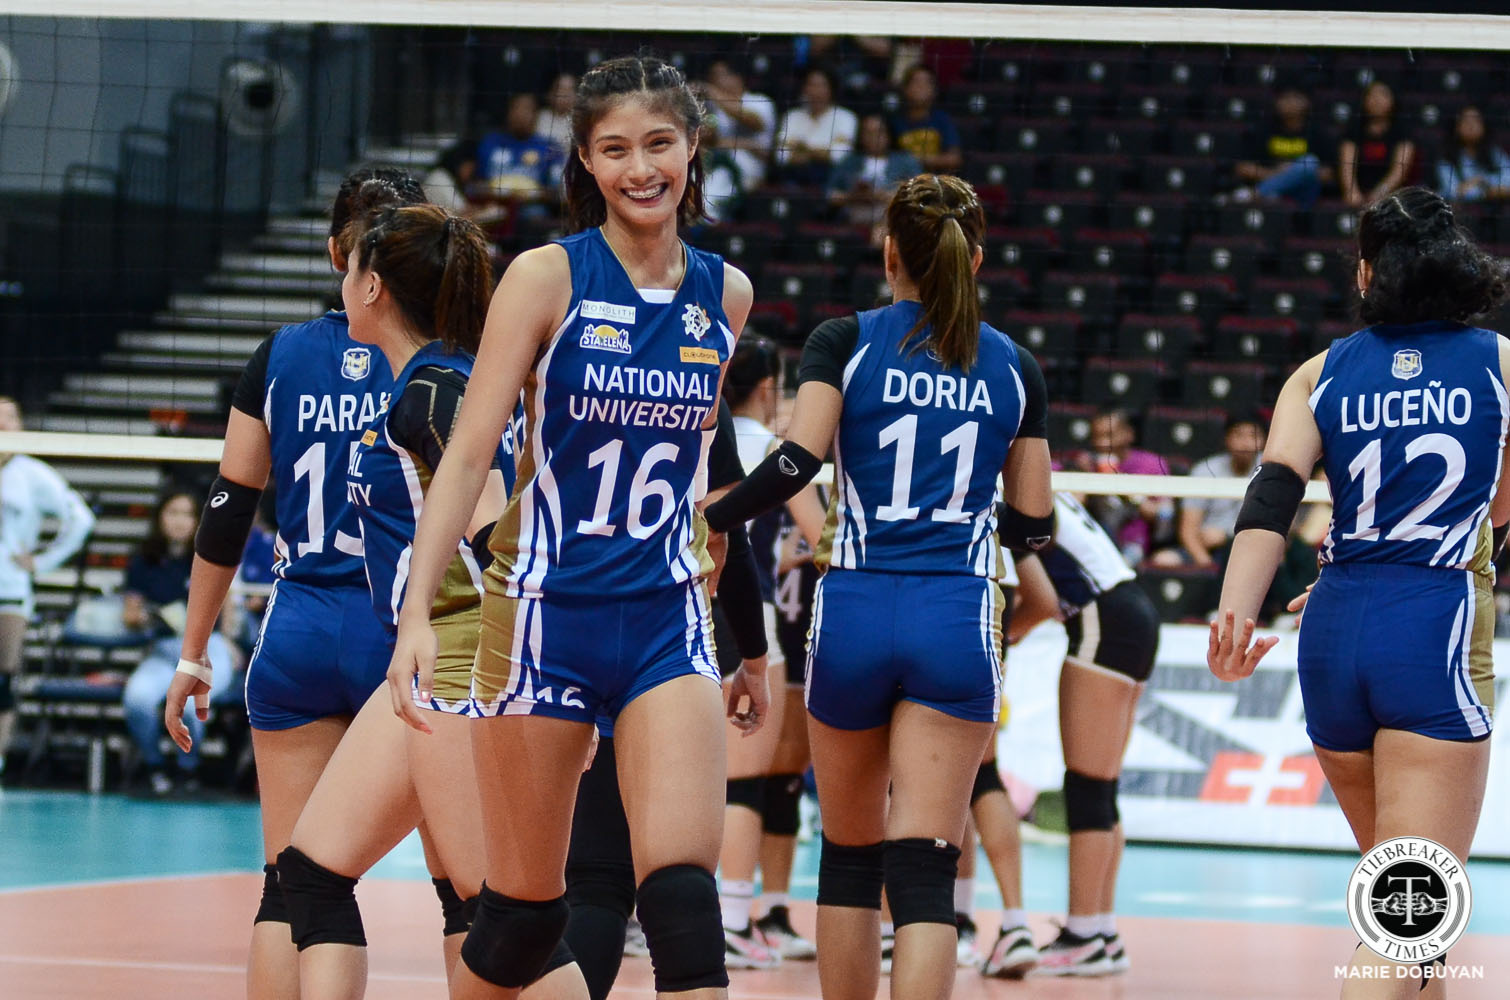 Tiebreaker Times Ivy Lacsina looks to step out of Jaja's shadow News NU UAAP Volleyball  UAAP Season 82 Women's Volleyball UAAP Season 82 NU Women's Volleyball Jaja Santiago Ivy Lacsina